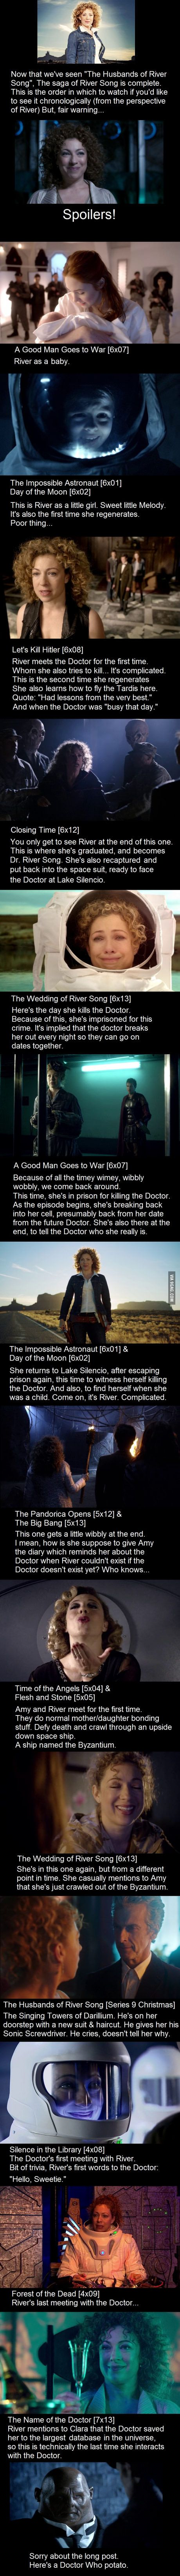 River Song's Timeline. Watch in this order if you'd like to see River's journey…